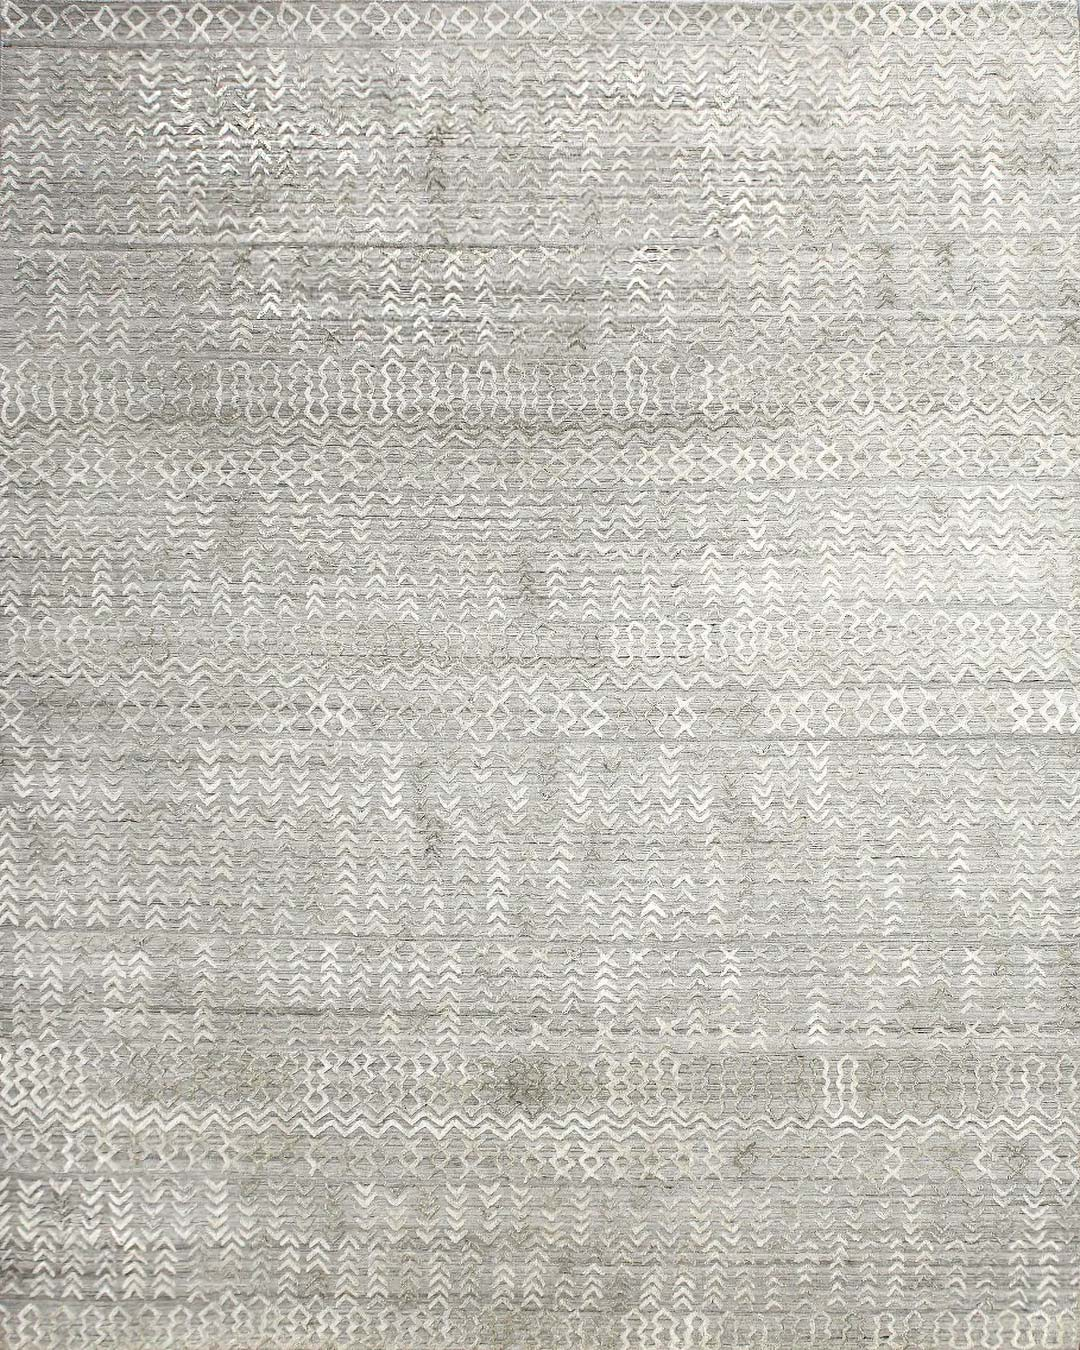 Overhead image of patterned Everly rug in beige colour